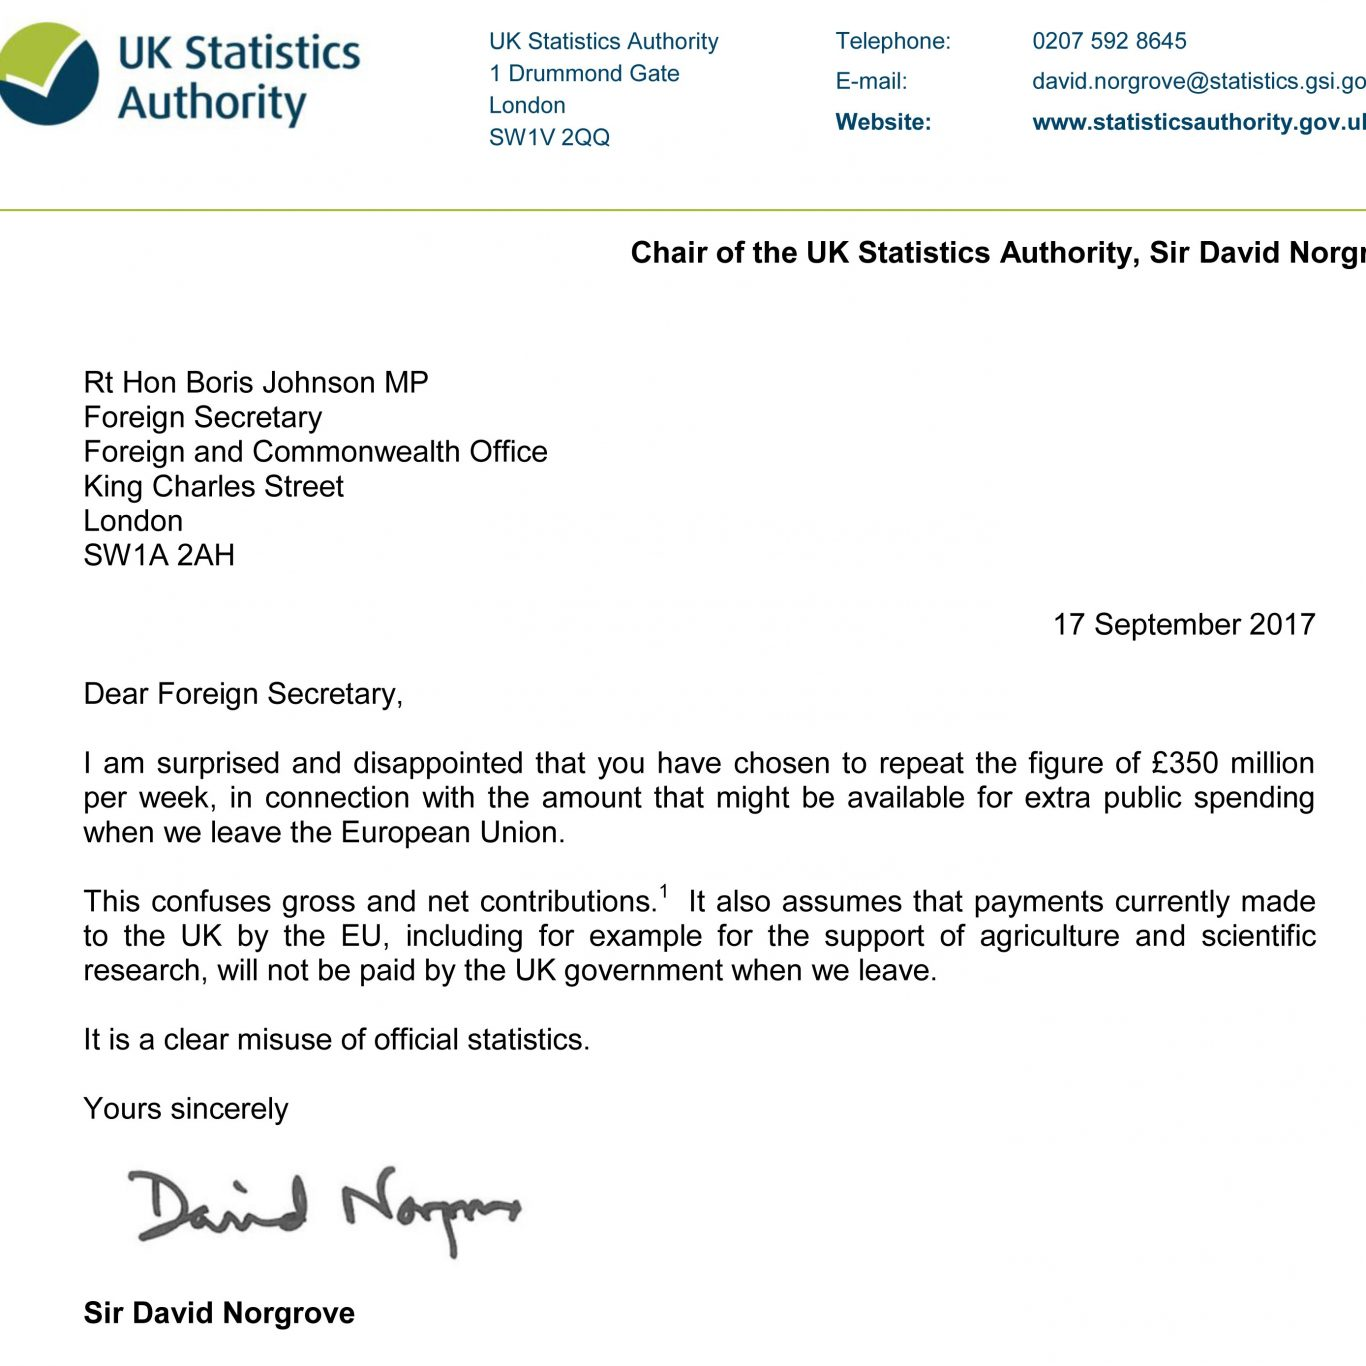 A letter sent by Sir David Norgrove to Boris Johnson saying he is